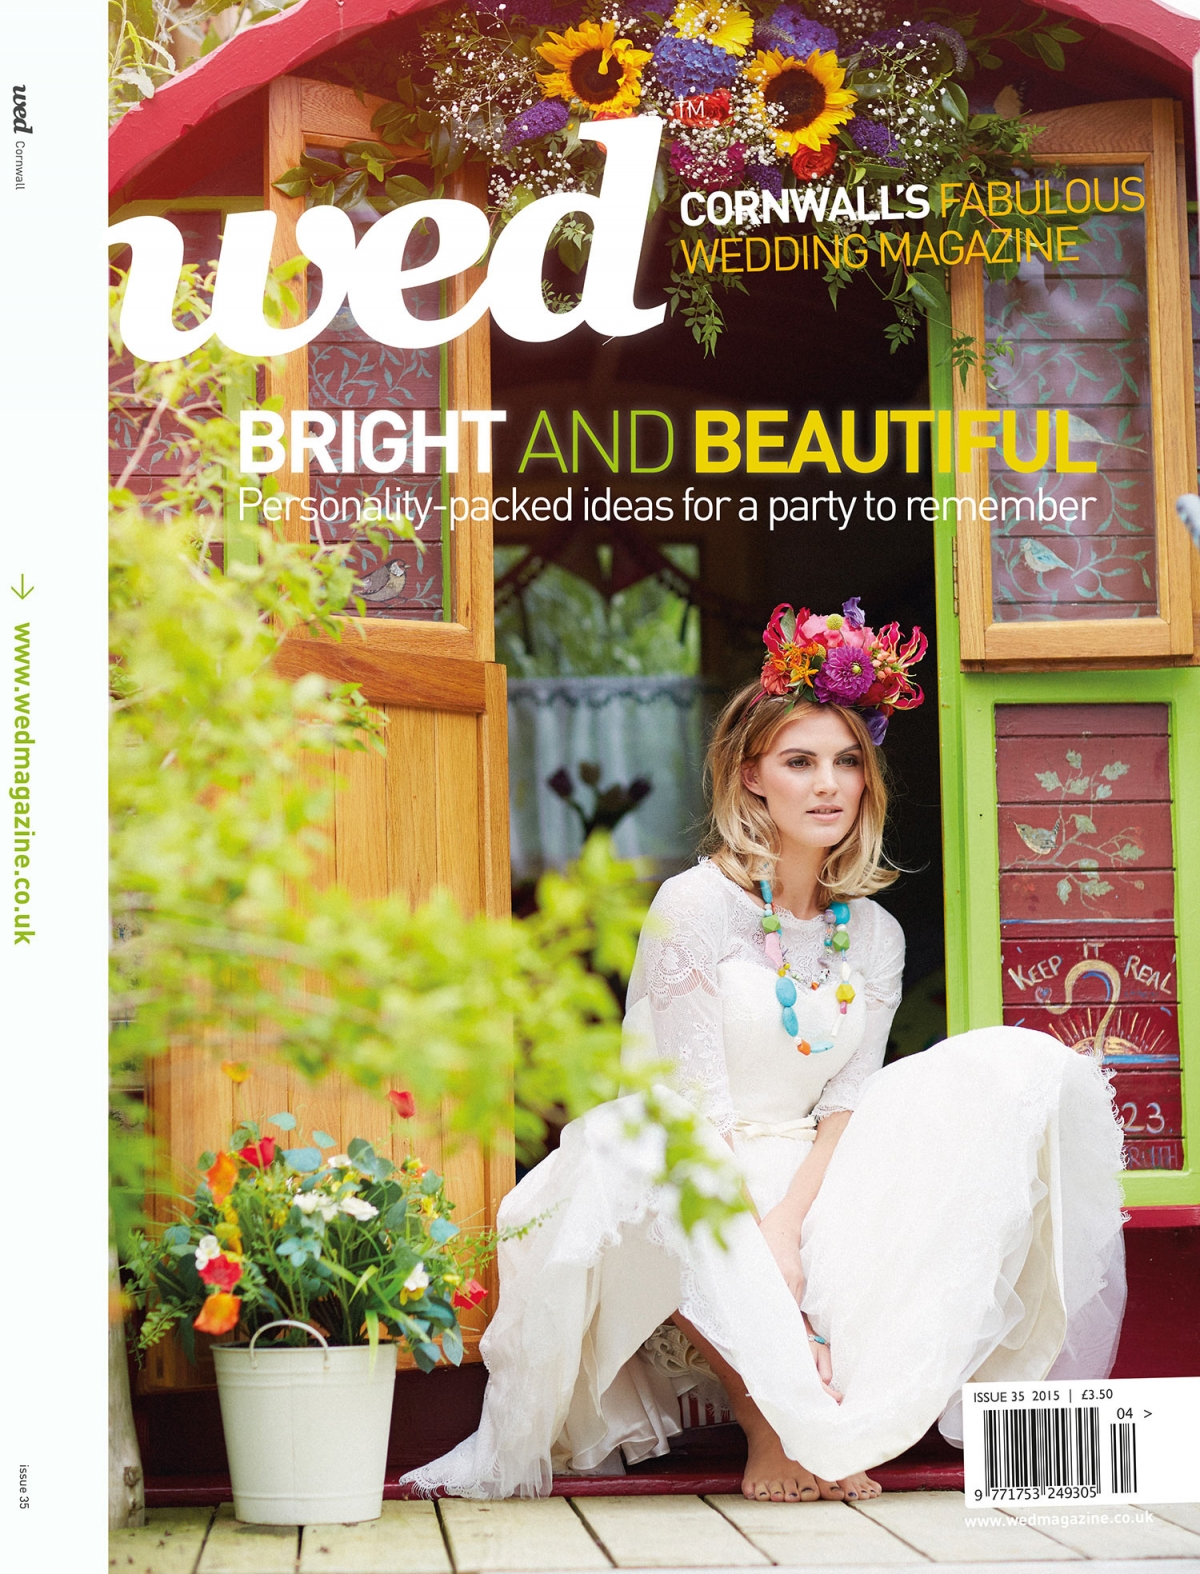 Wed-Magazine-Cover-35